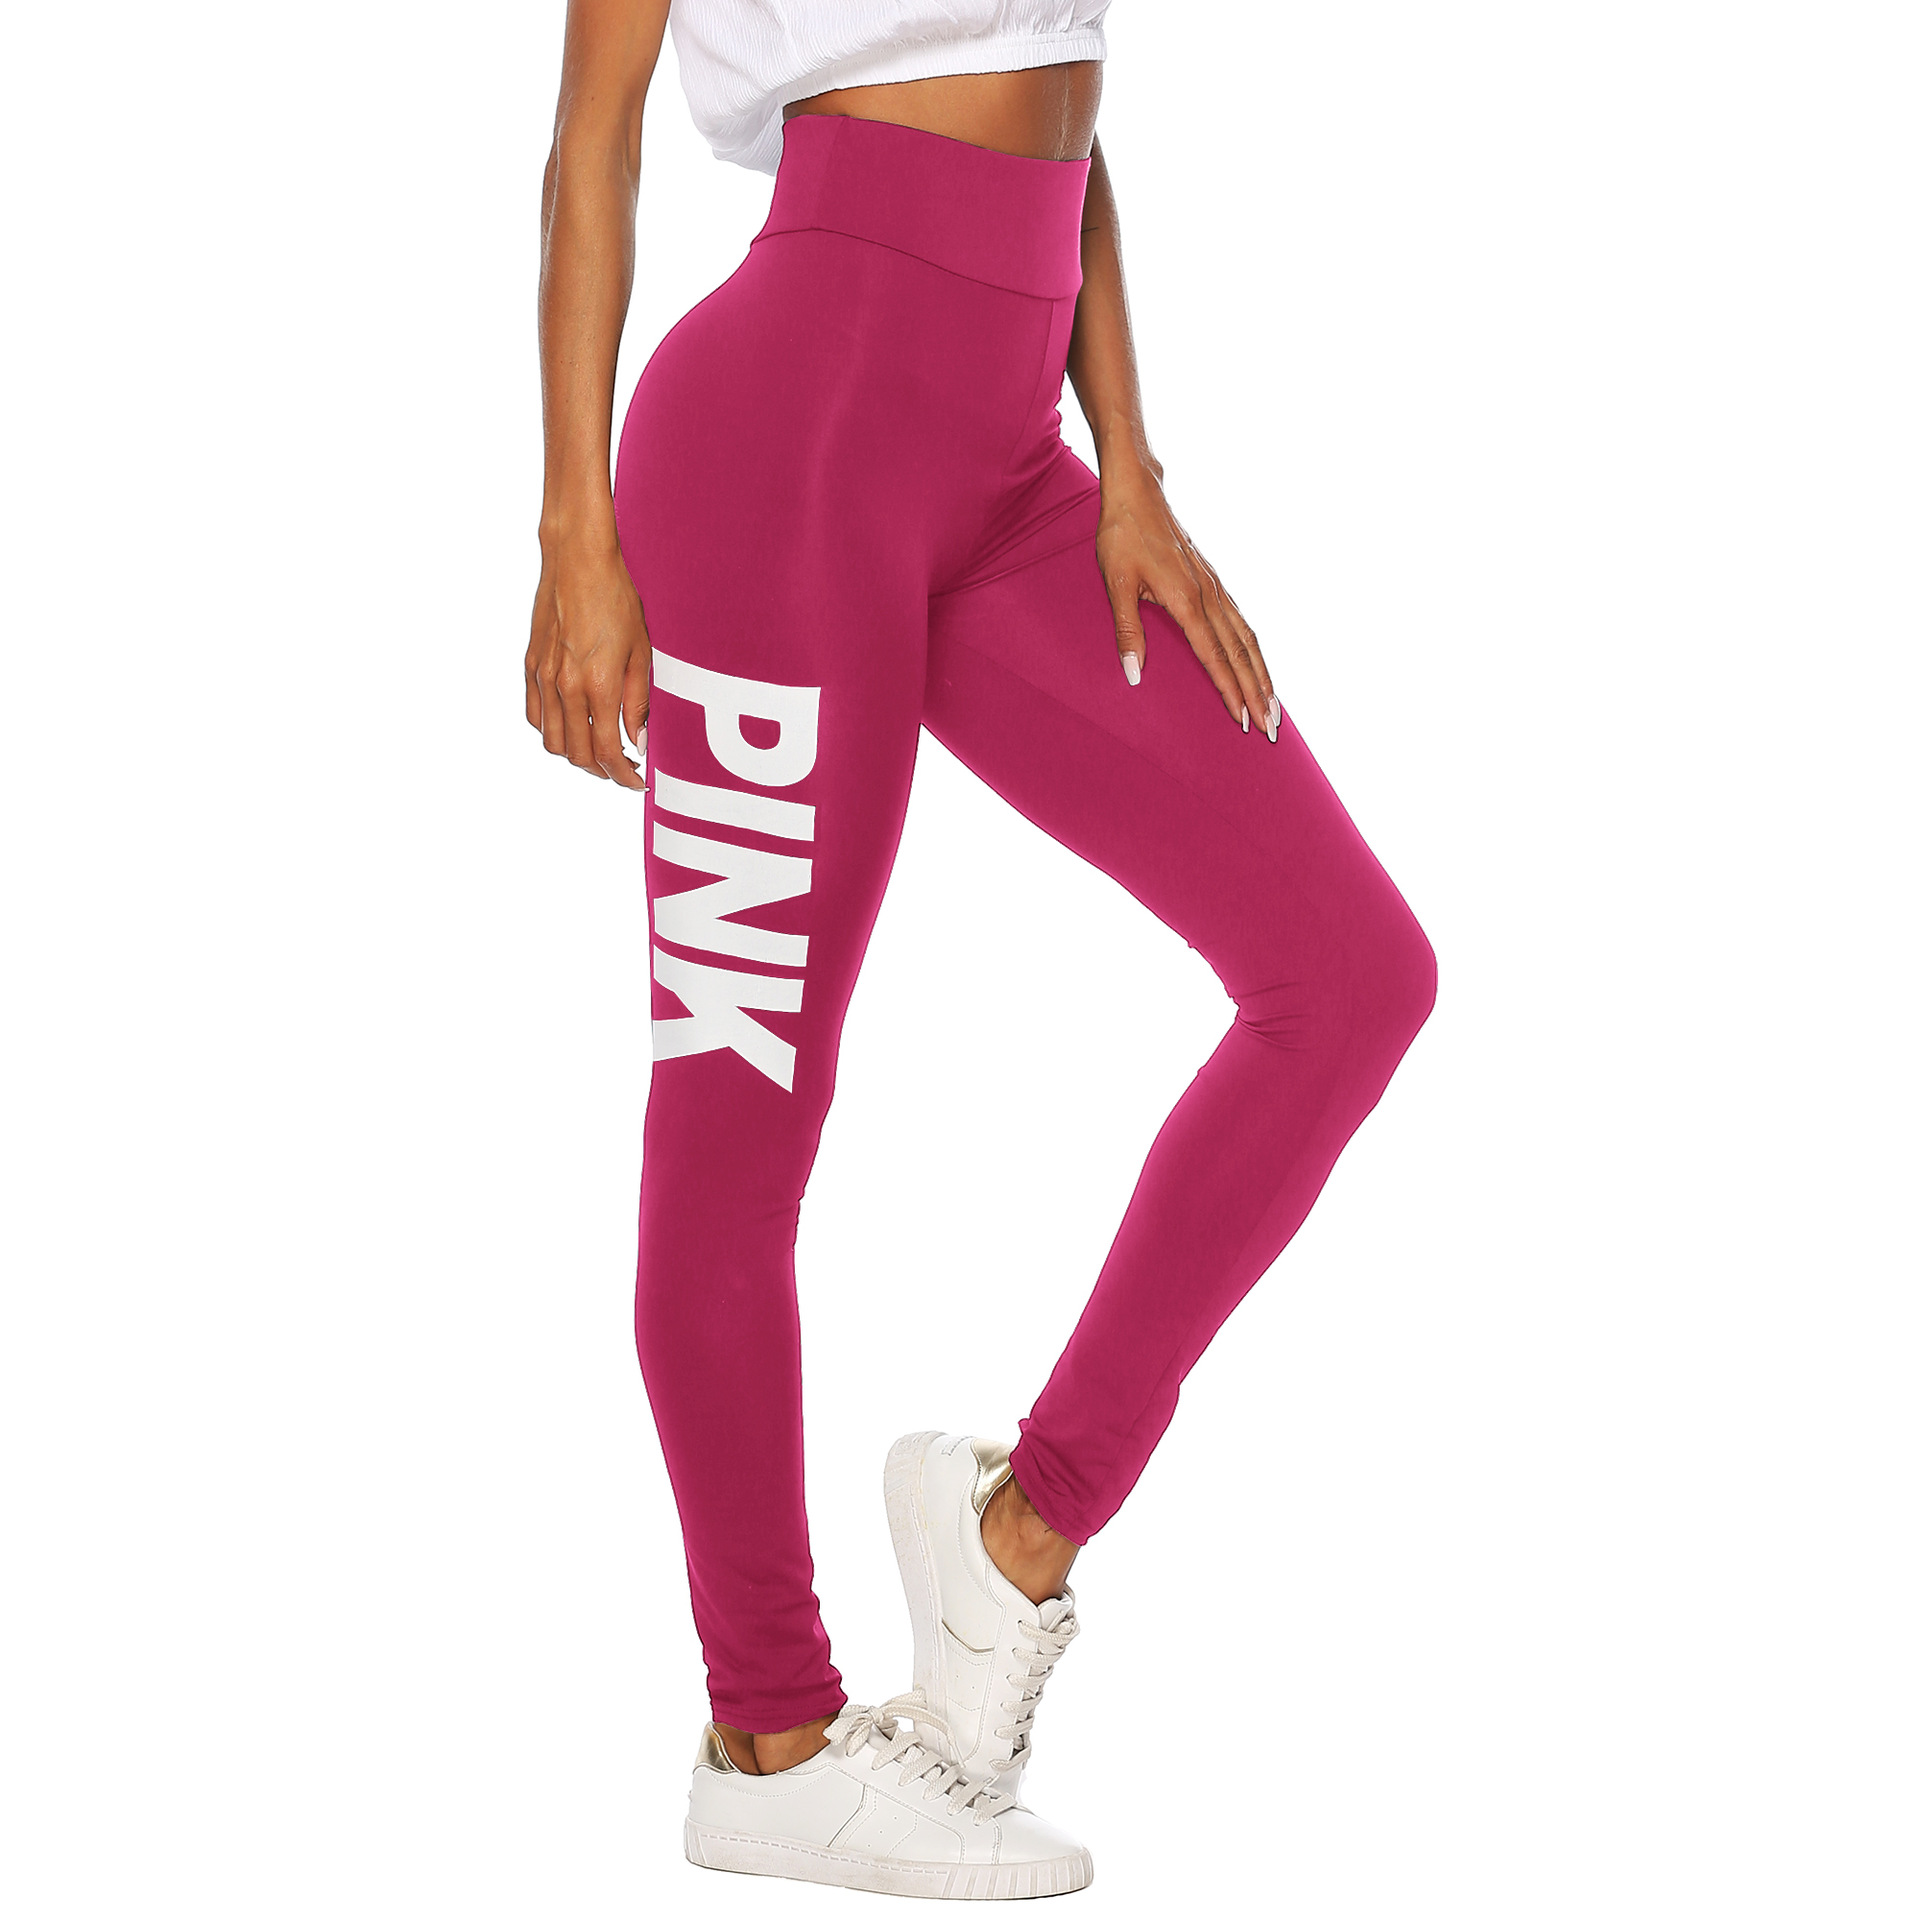 Separate Station Hot Selling WOMEN'S Dress Slim Fit Solid Color Pink Printed Letter Elasticity Tight Leggings A1813